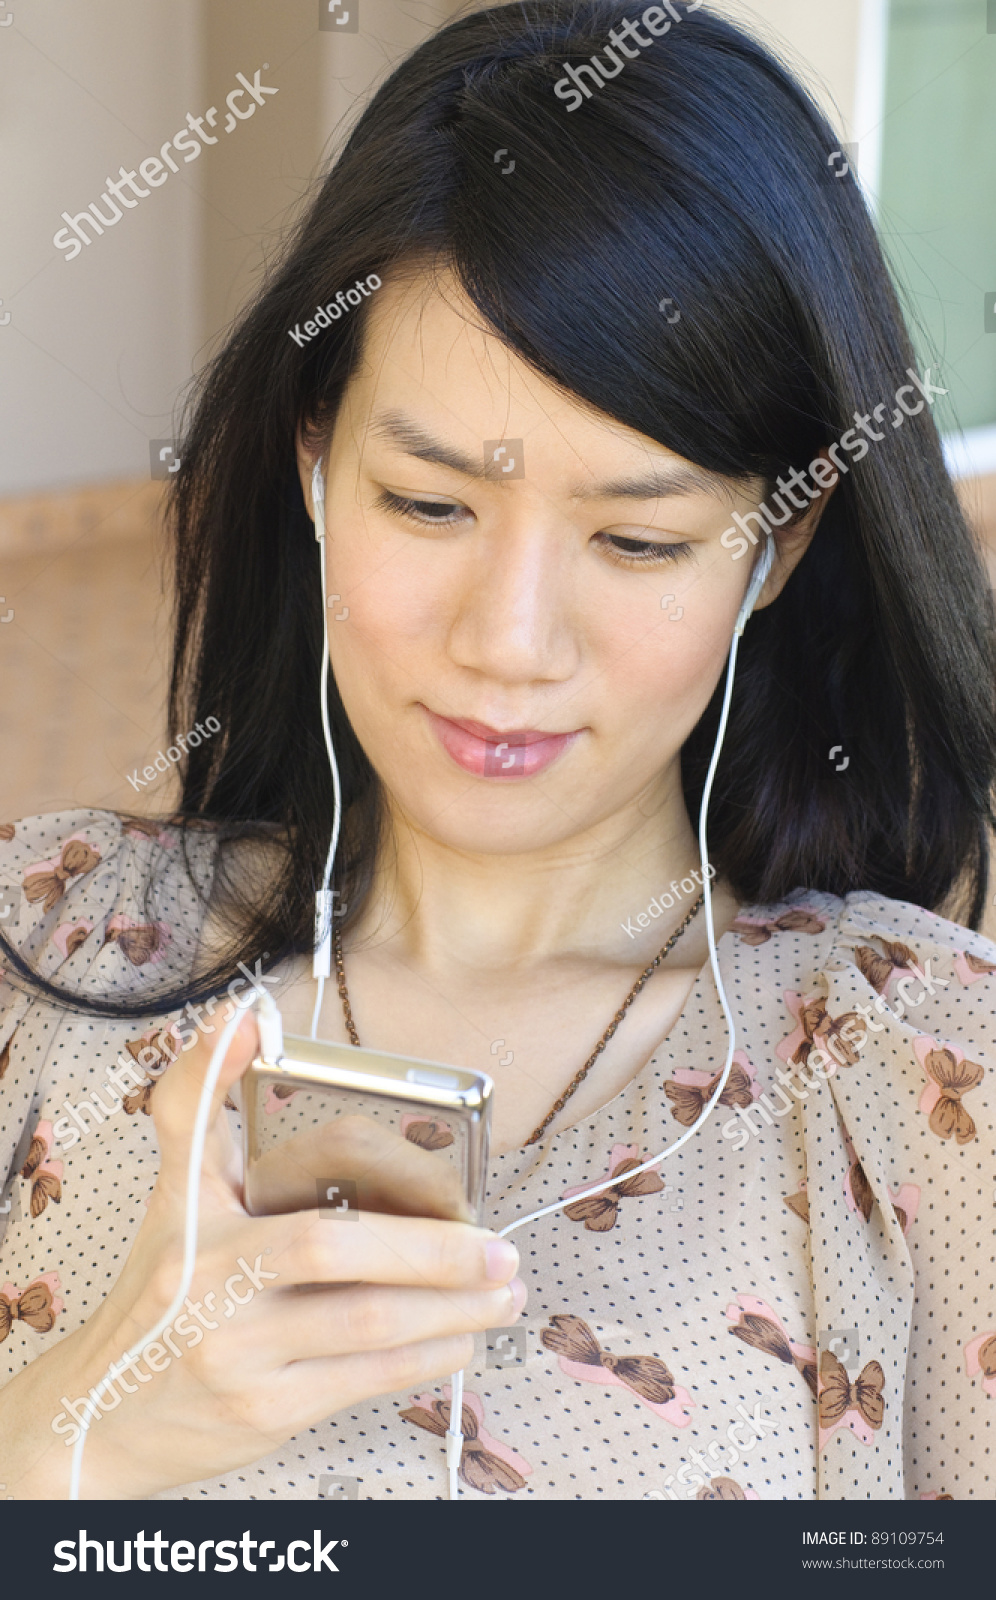 cute asian girl listening music earbuds stock photo (royalty free